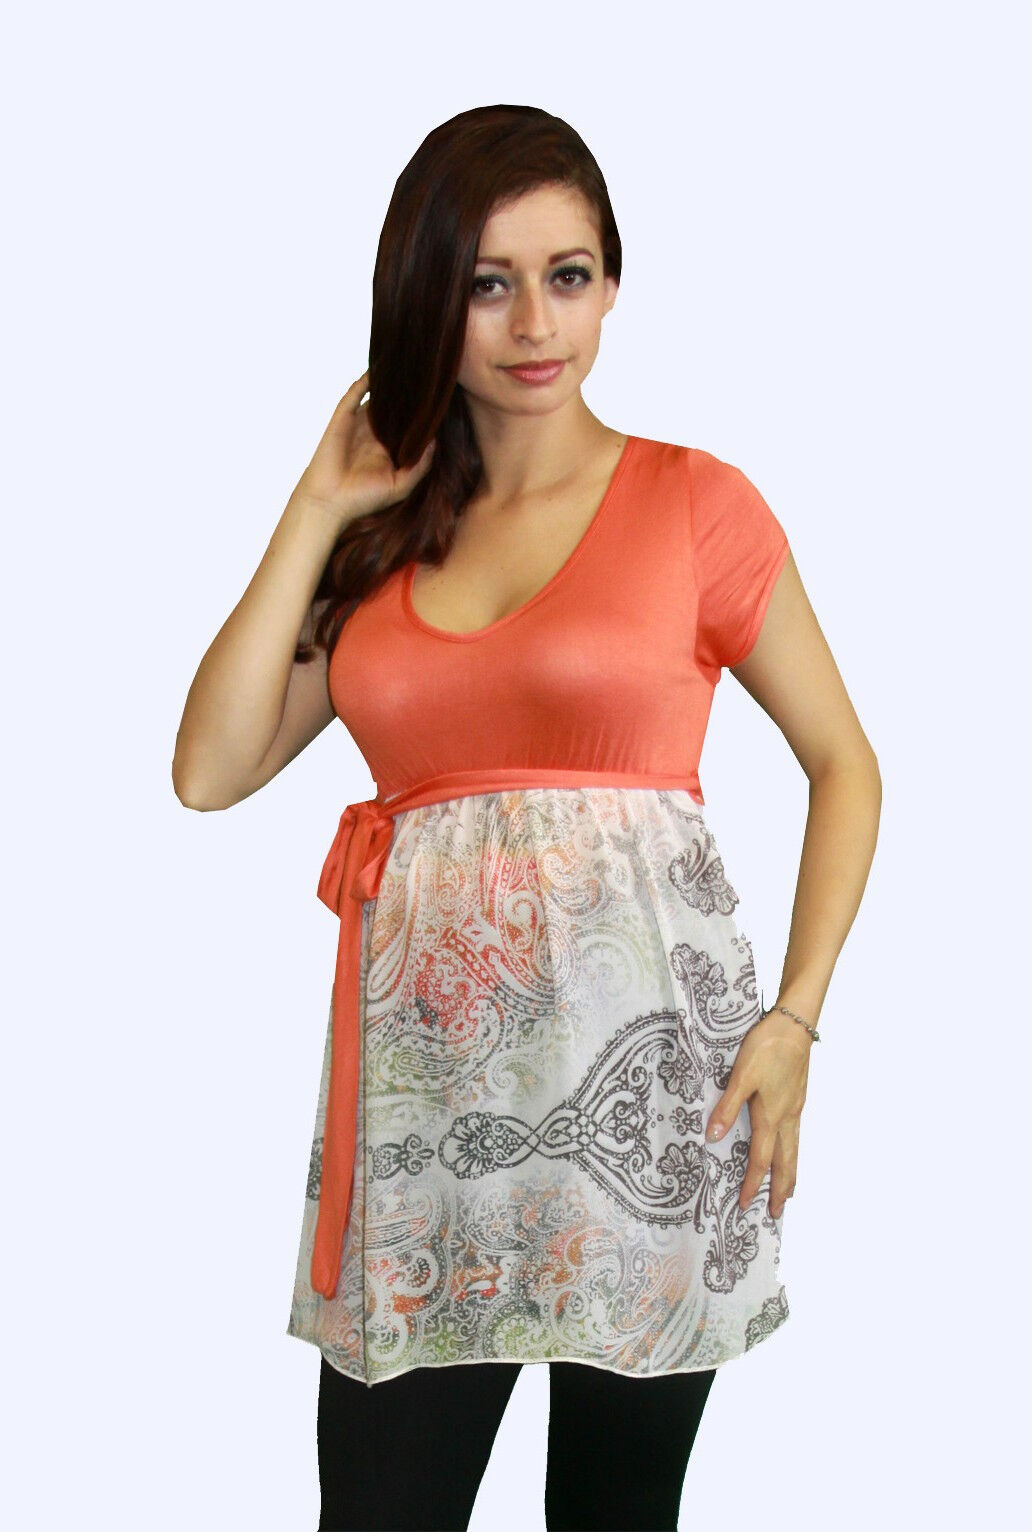 Shop cute and trendy maternity clothes at PinkBlush Maternity. We carry a wide The Latest Summer Trends· One Stop Maternity Shop· Free Shipping U.S. Orders· 10% Off First OrderStyles: Maternity Dresses, Delivery Robes, Maternity Tops, Maternity Bottoms.